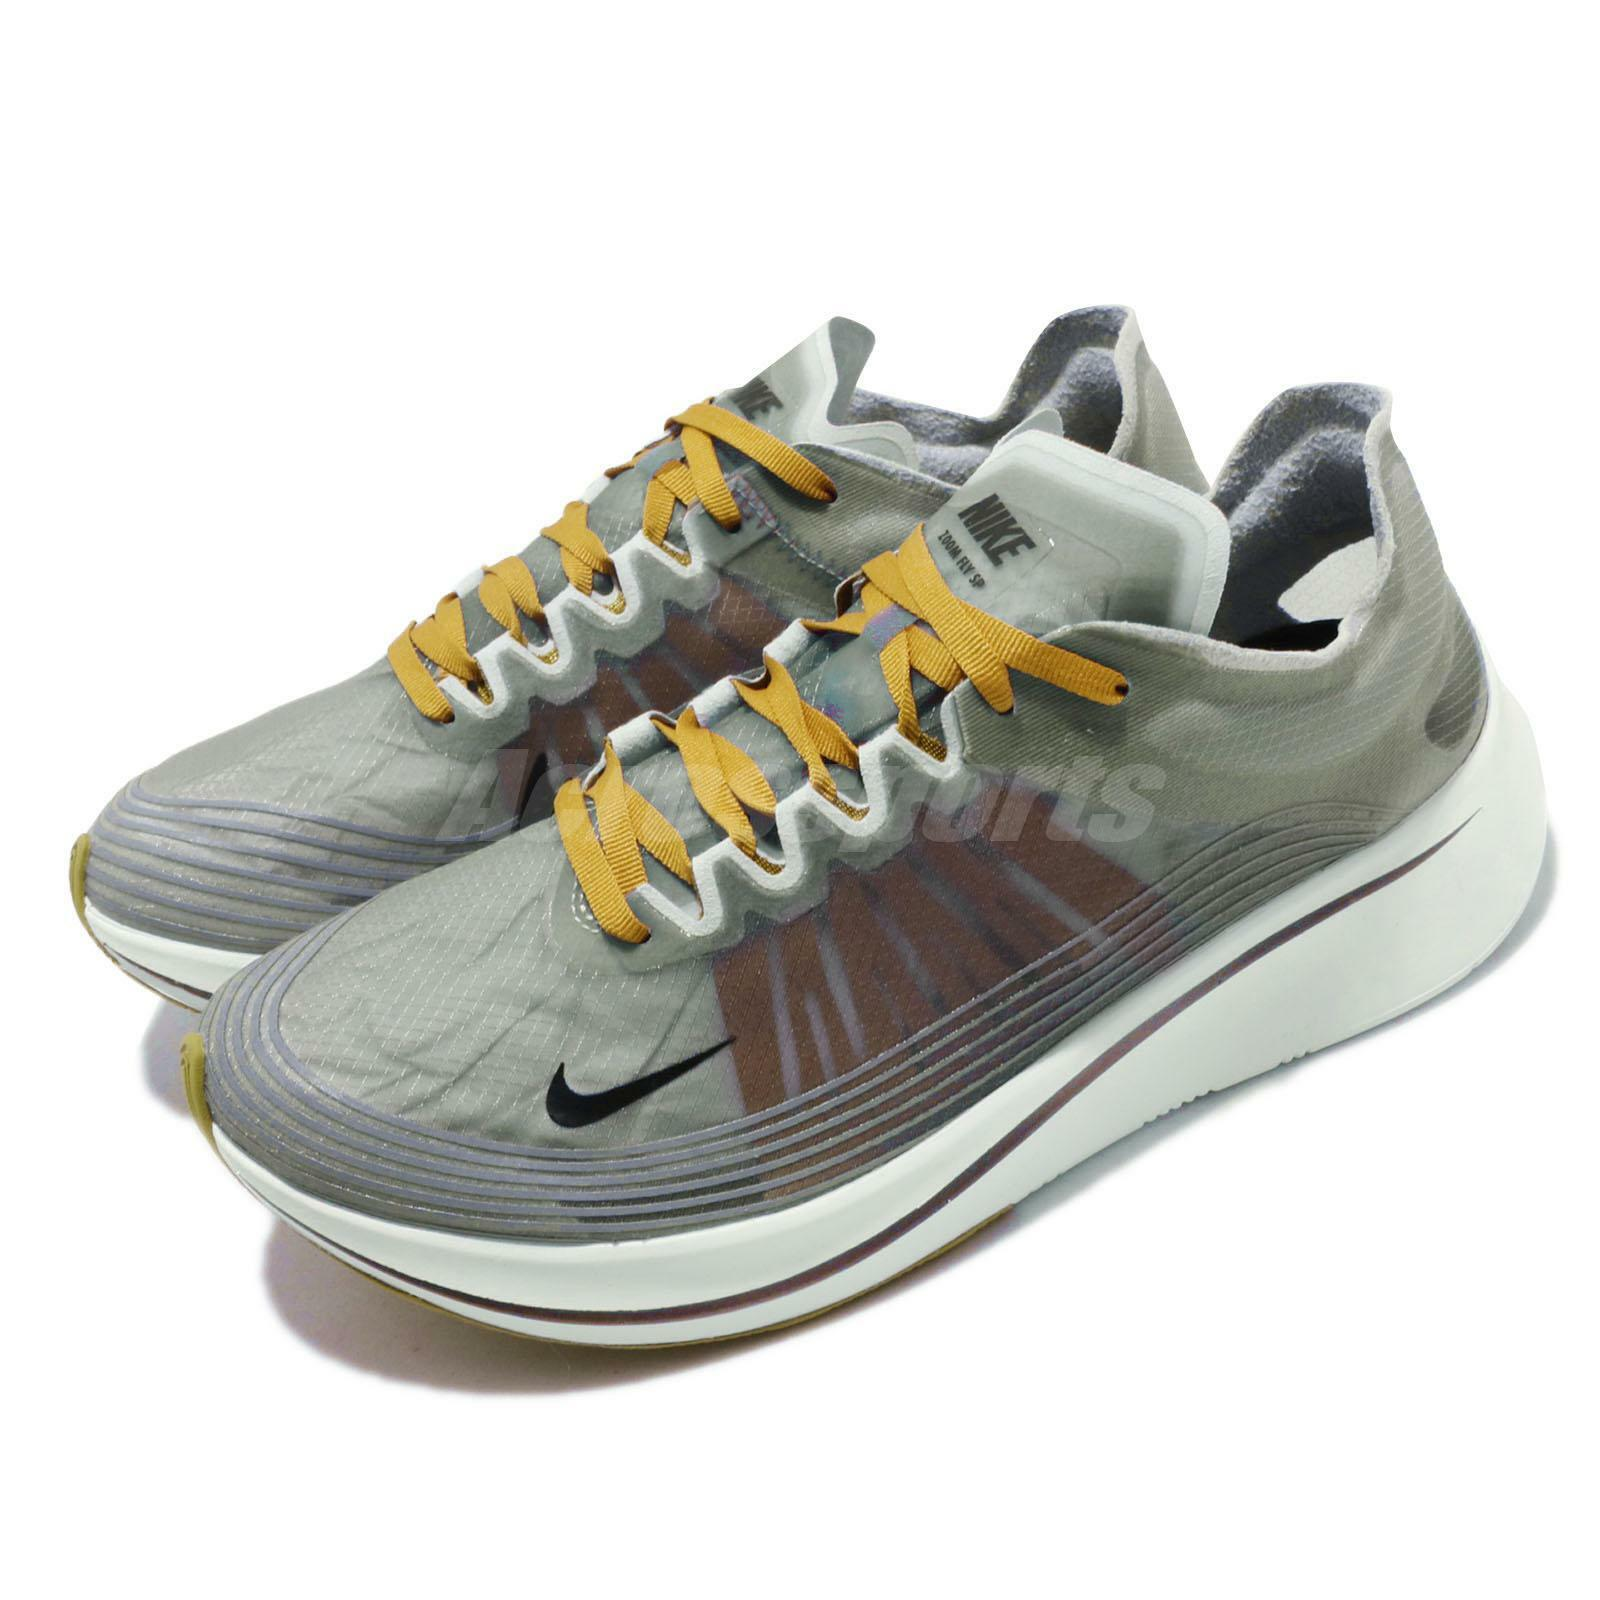 Nike Zoom Fly / SP  s Running Running Running Shoes Sneakers Trainers Pick 1 25fcec